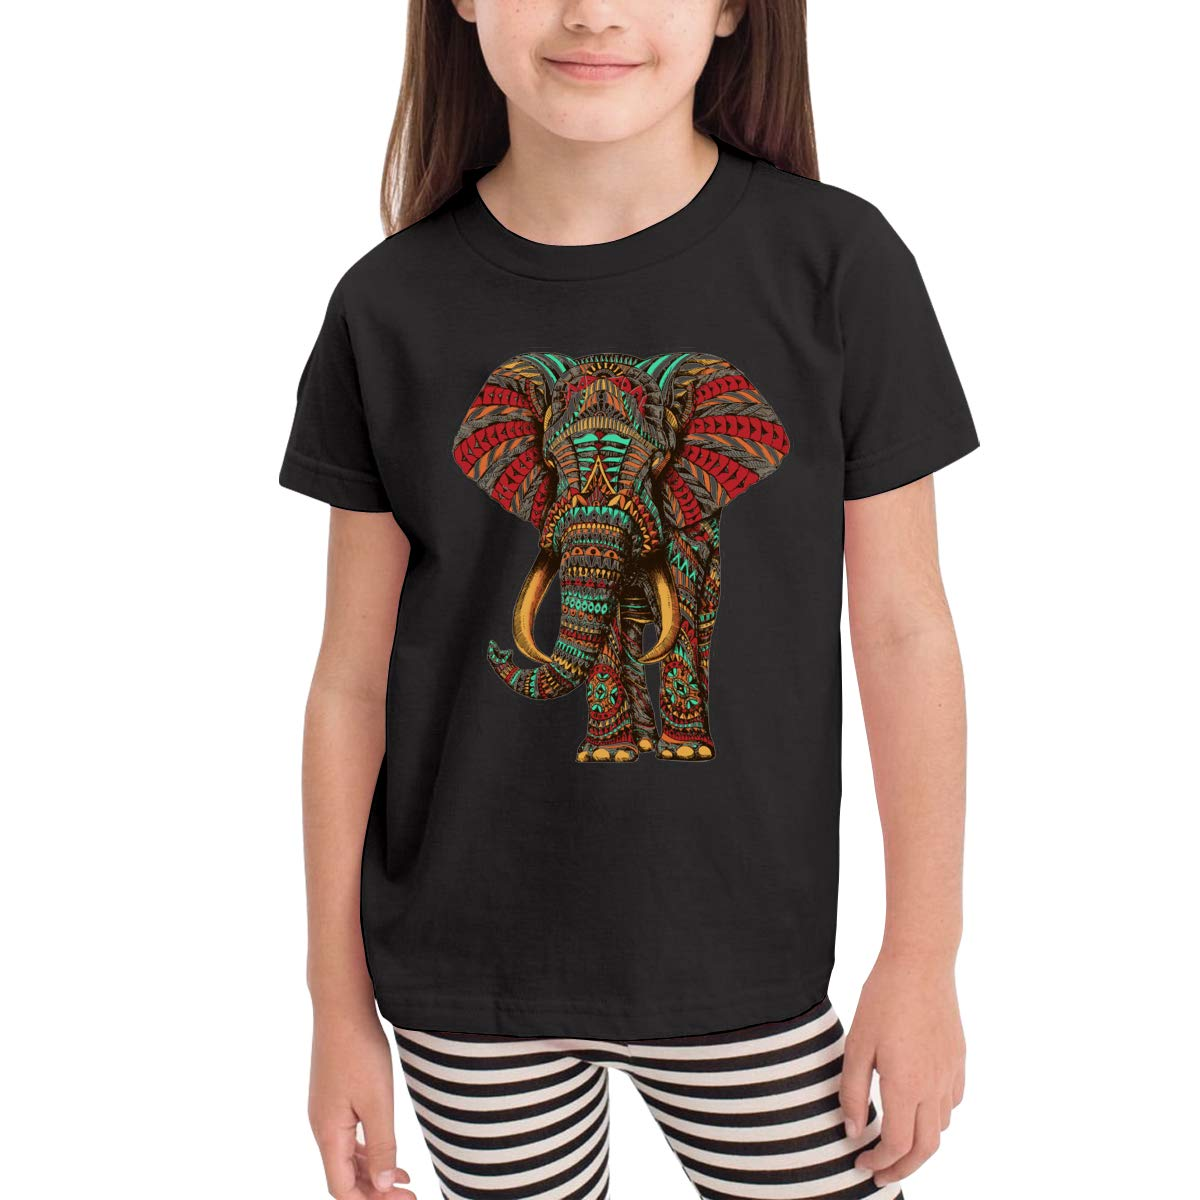 Onlybabycare Elephant Mandala 100/% Cotton Toddler Baby Boys Girls Kids Short Sleeve T Shirt Top Tee Clothes 2-6 T